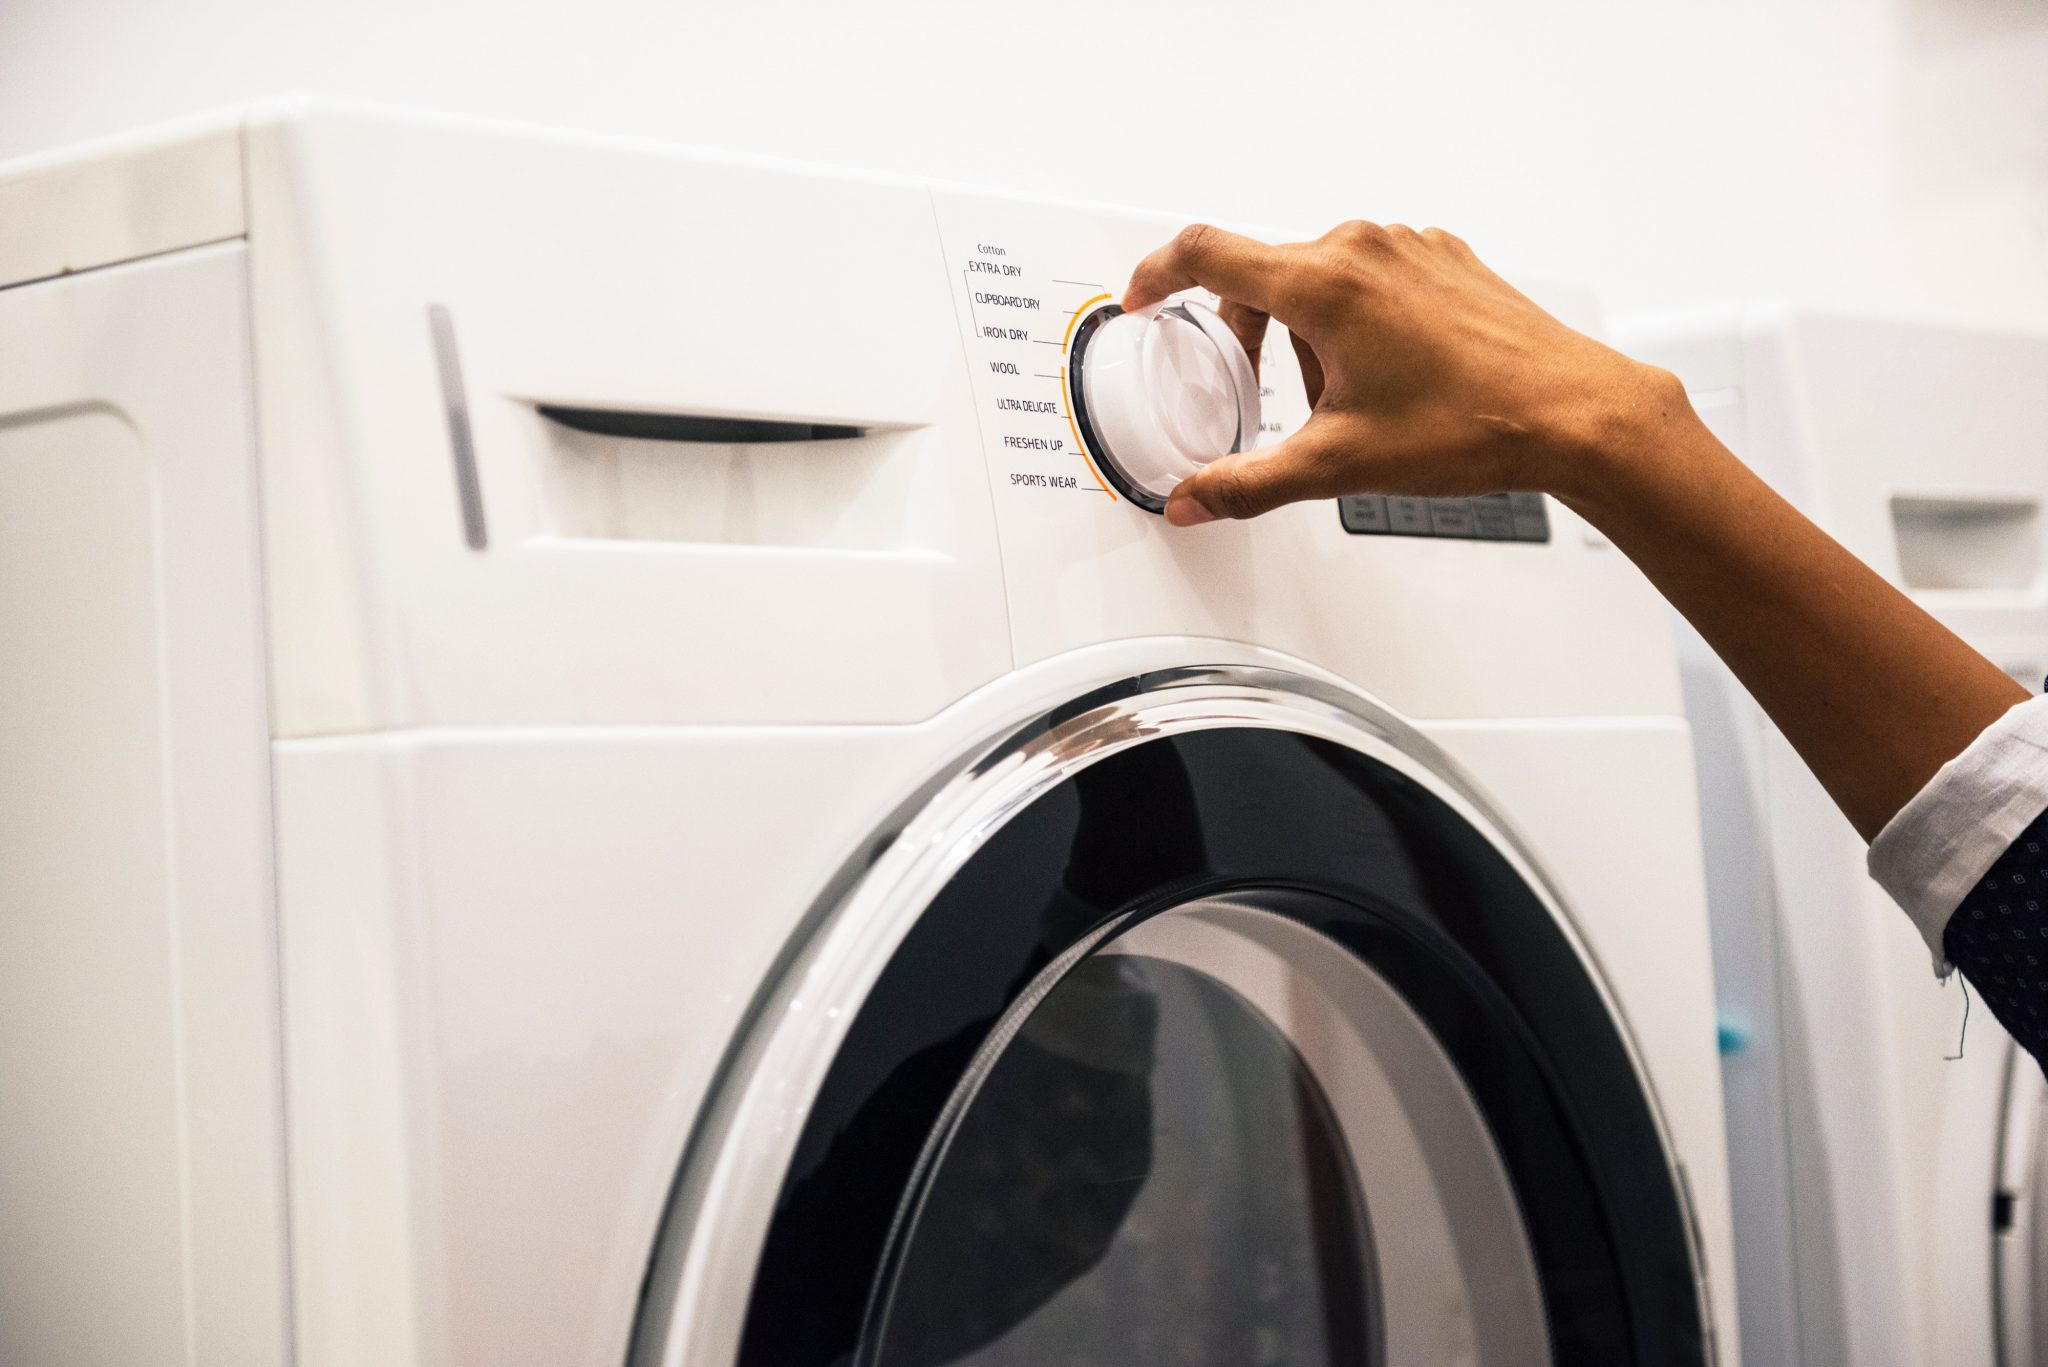 Earn Cash Selling Old Appliances: Who Buys Used Appliances